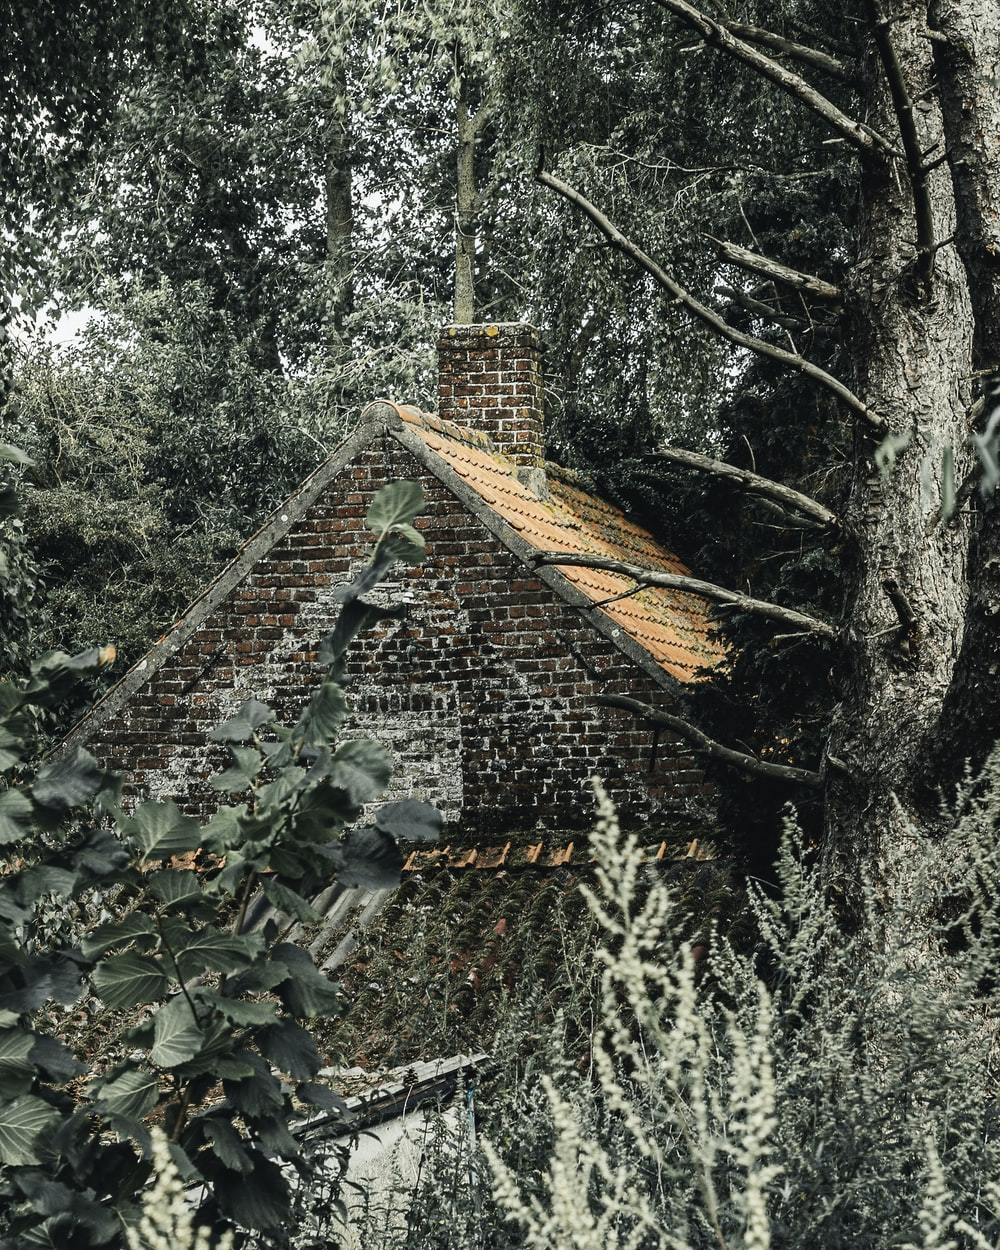 brown bricked house with chimney surrounded by trees